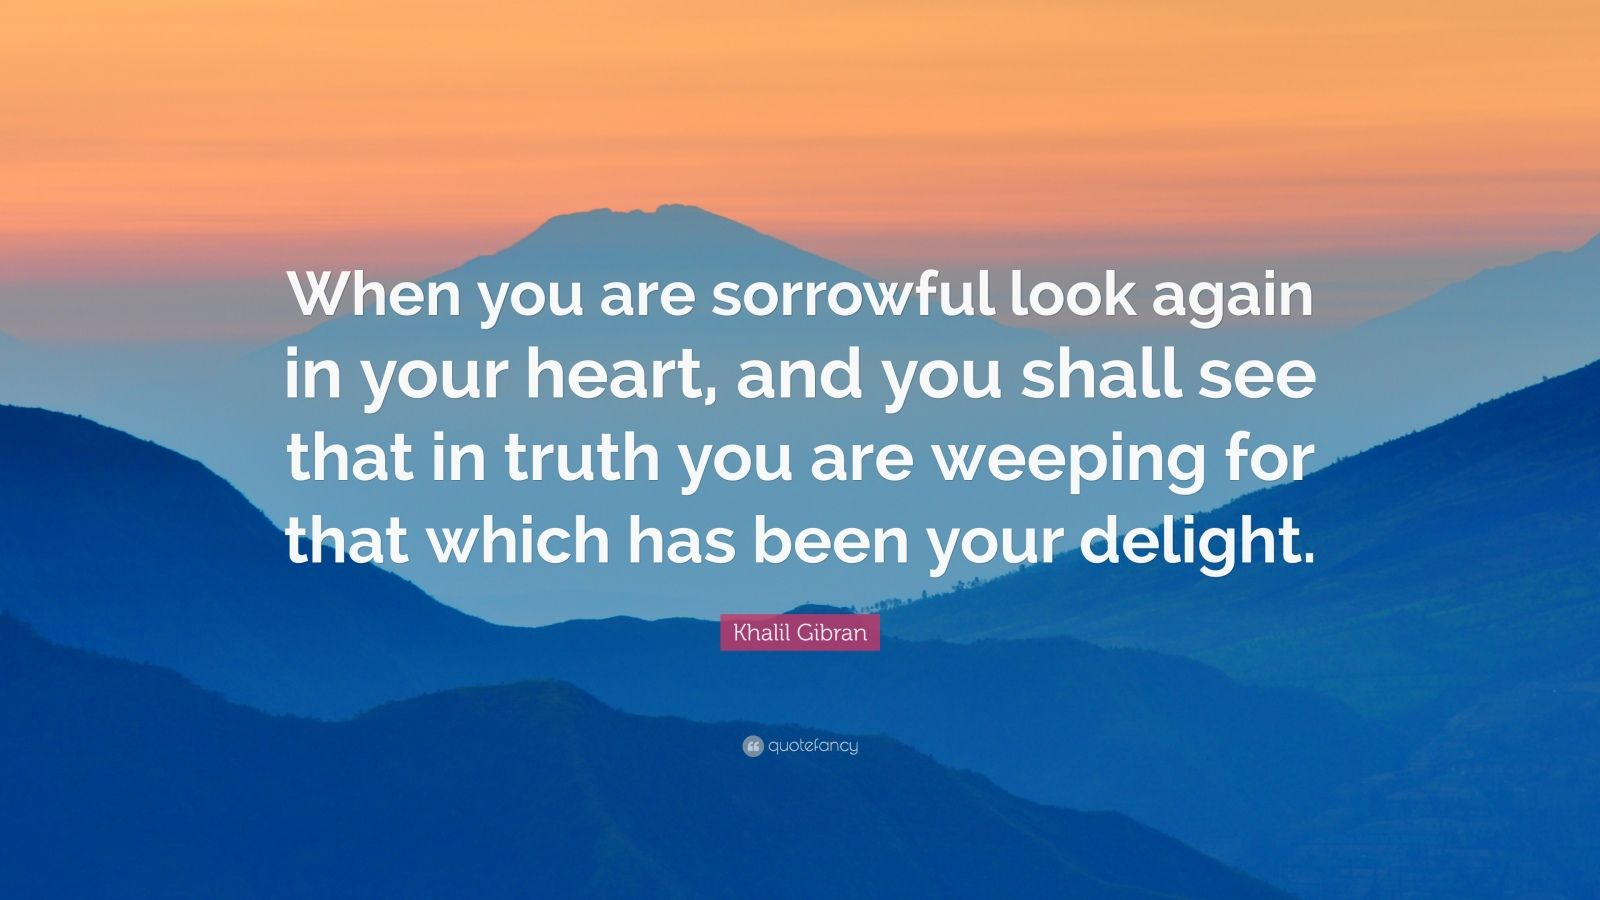 """Khalil Gibran Quote: """"When you are sorrowful look again in your heart, and you shall see that in truth you are weeping for that which has been your delight."""""""